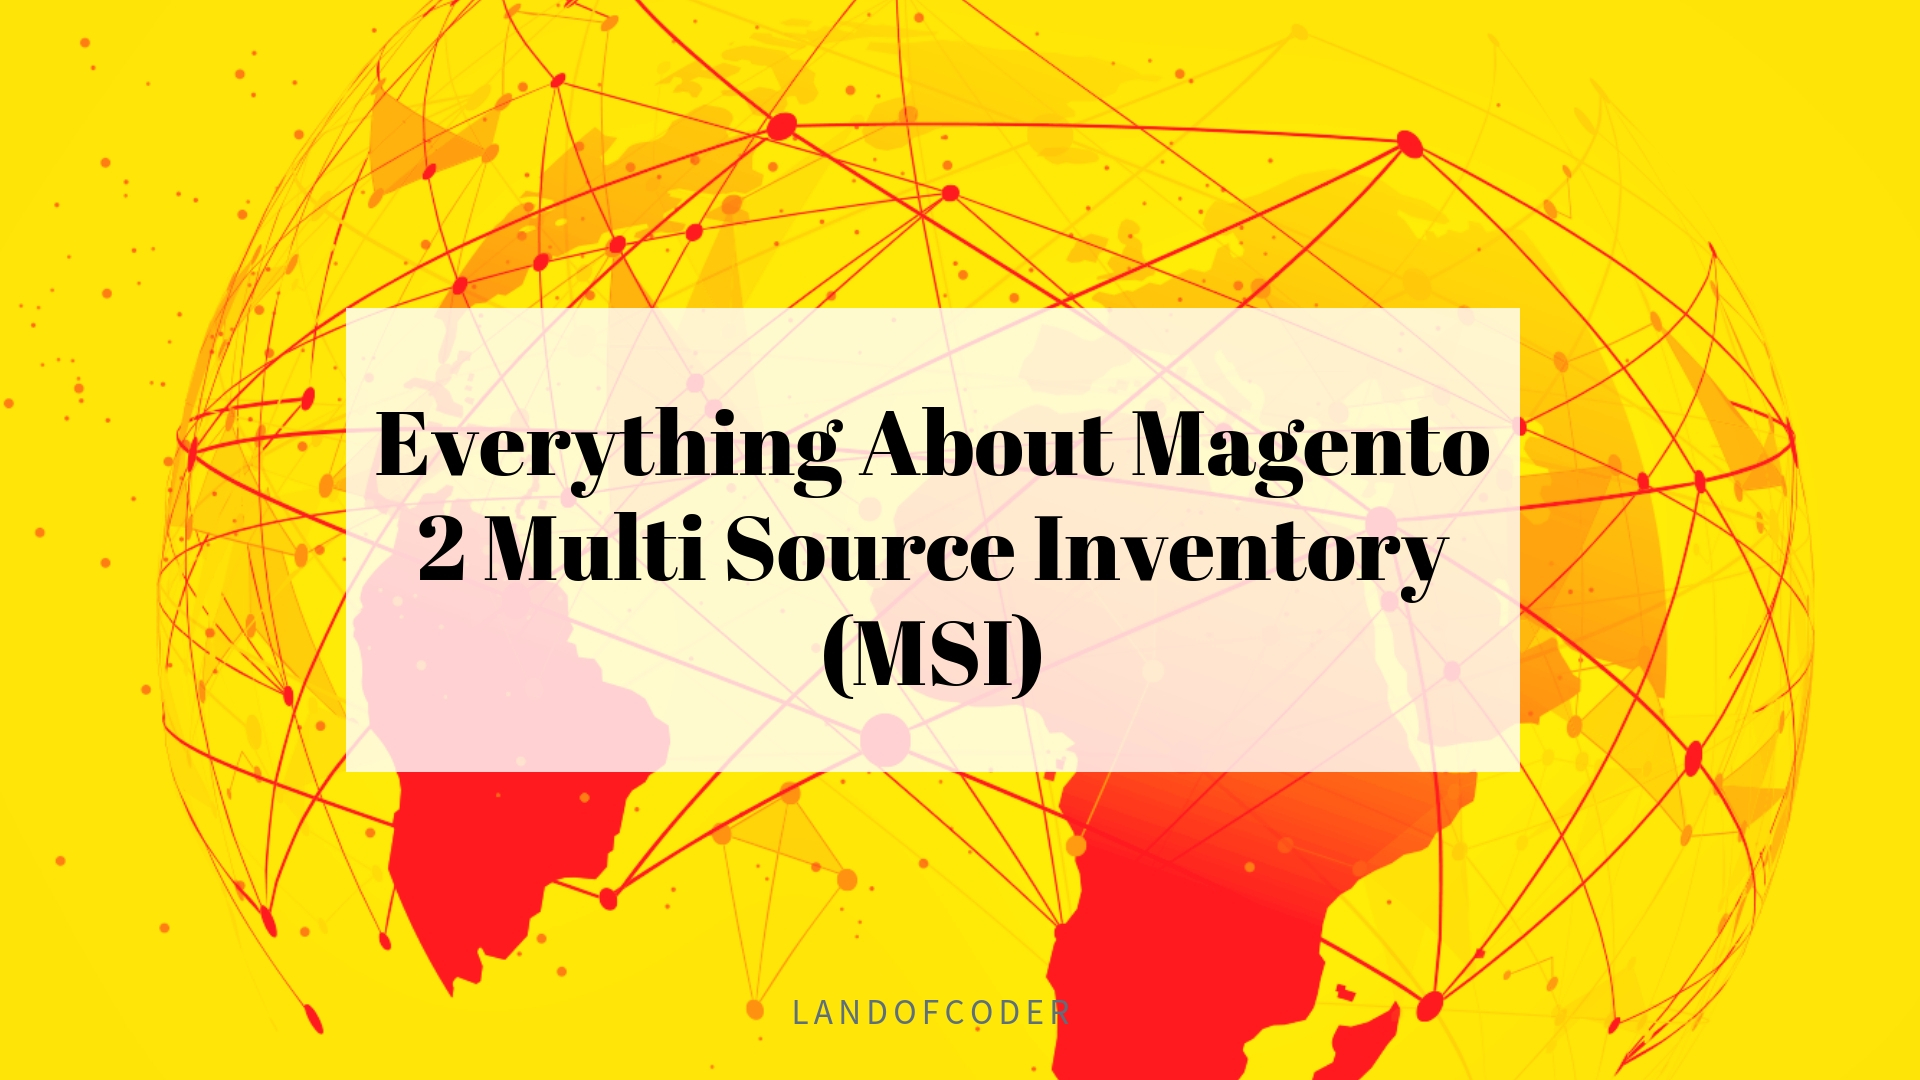 Everything About Magento 2 Multi Source Inventory (MSI)